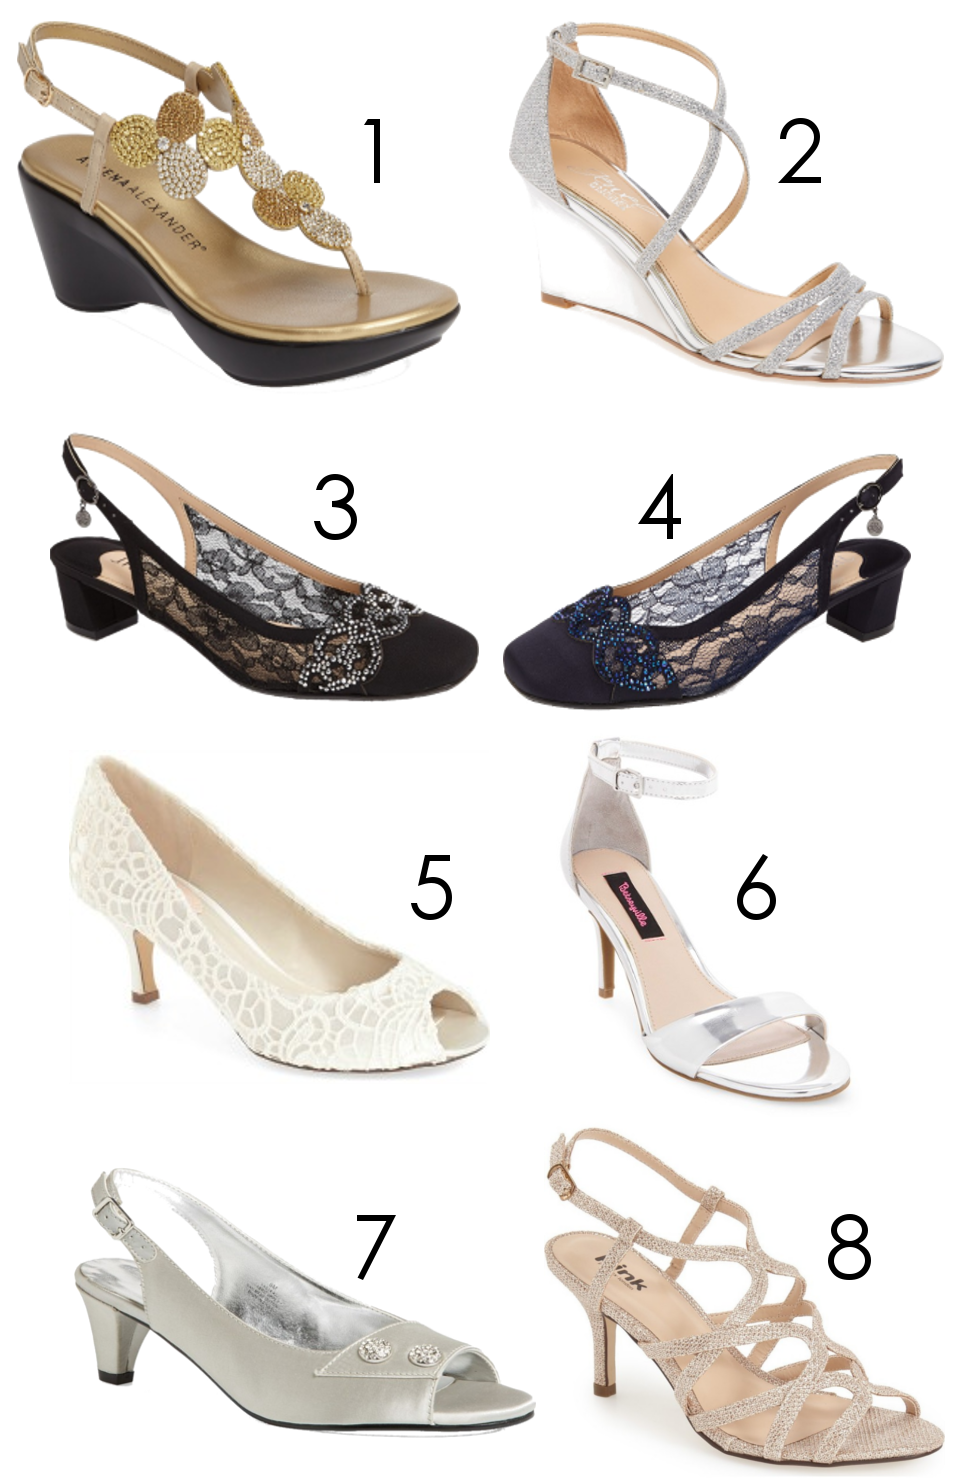 Vegan Wedding Shoes I DreaminLace.com